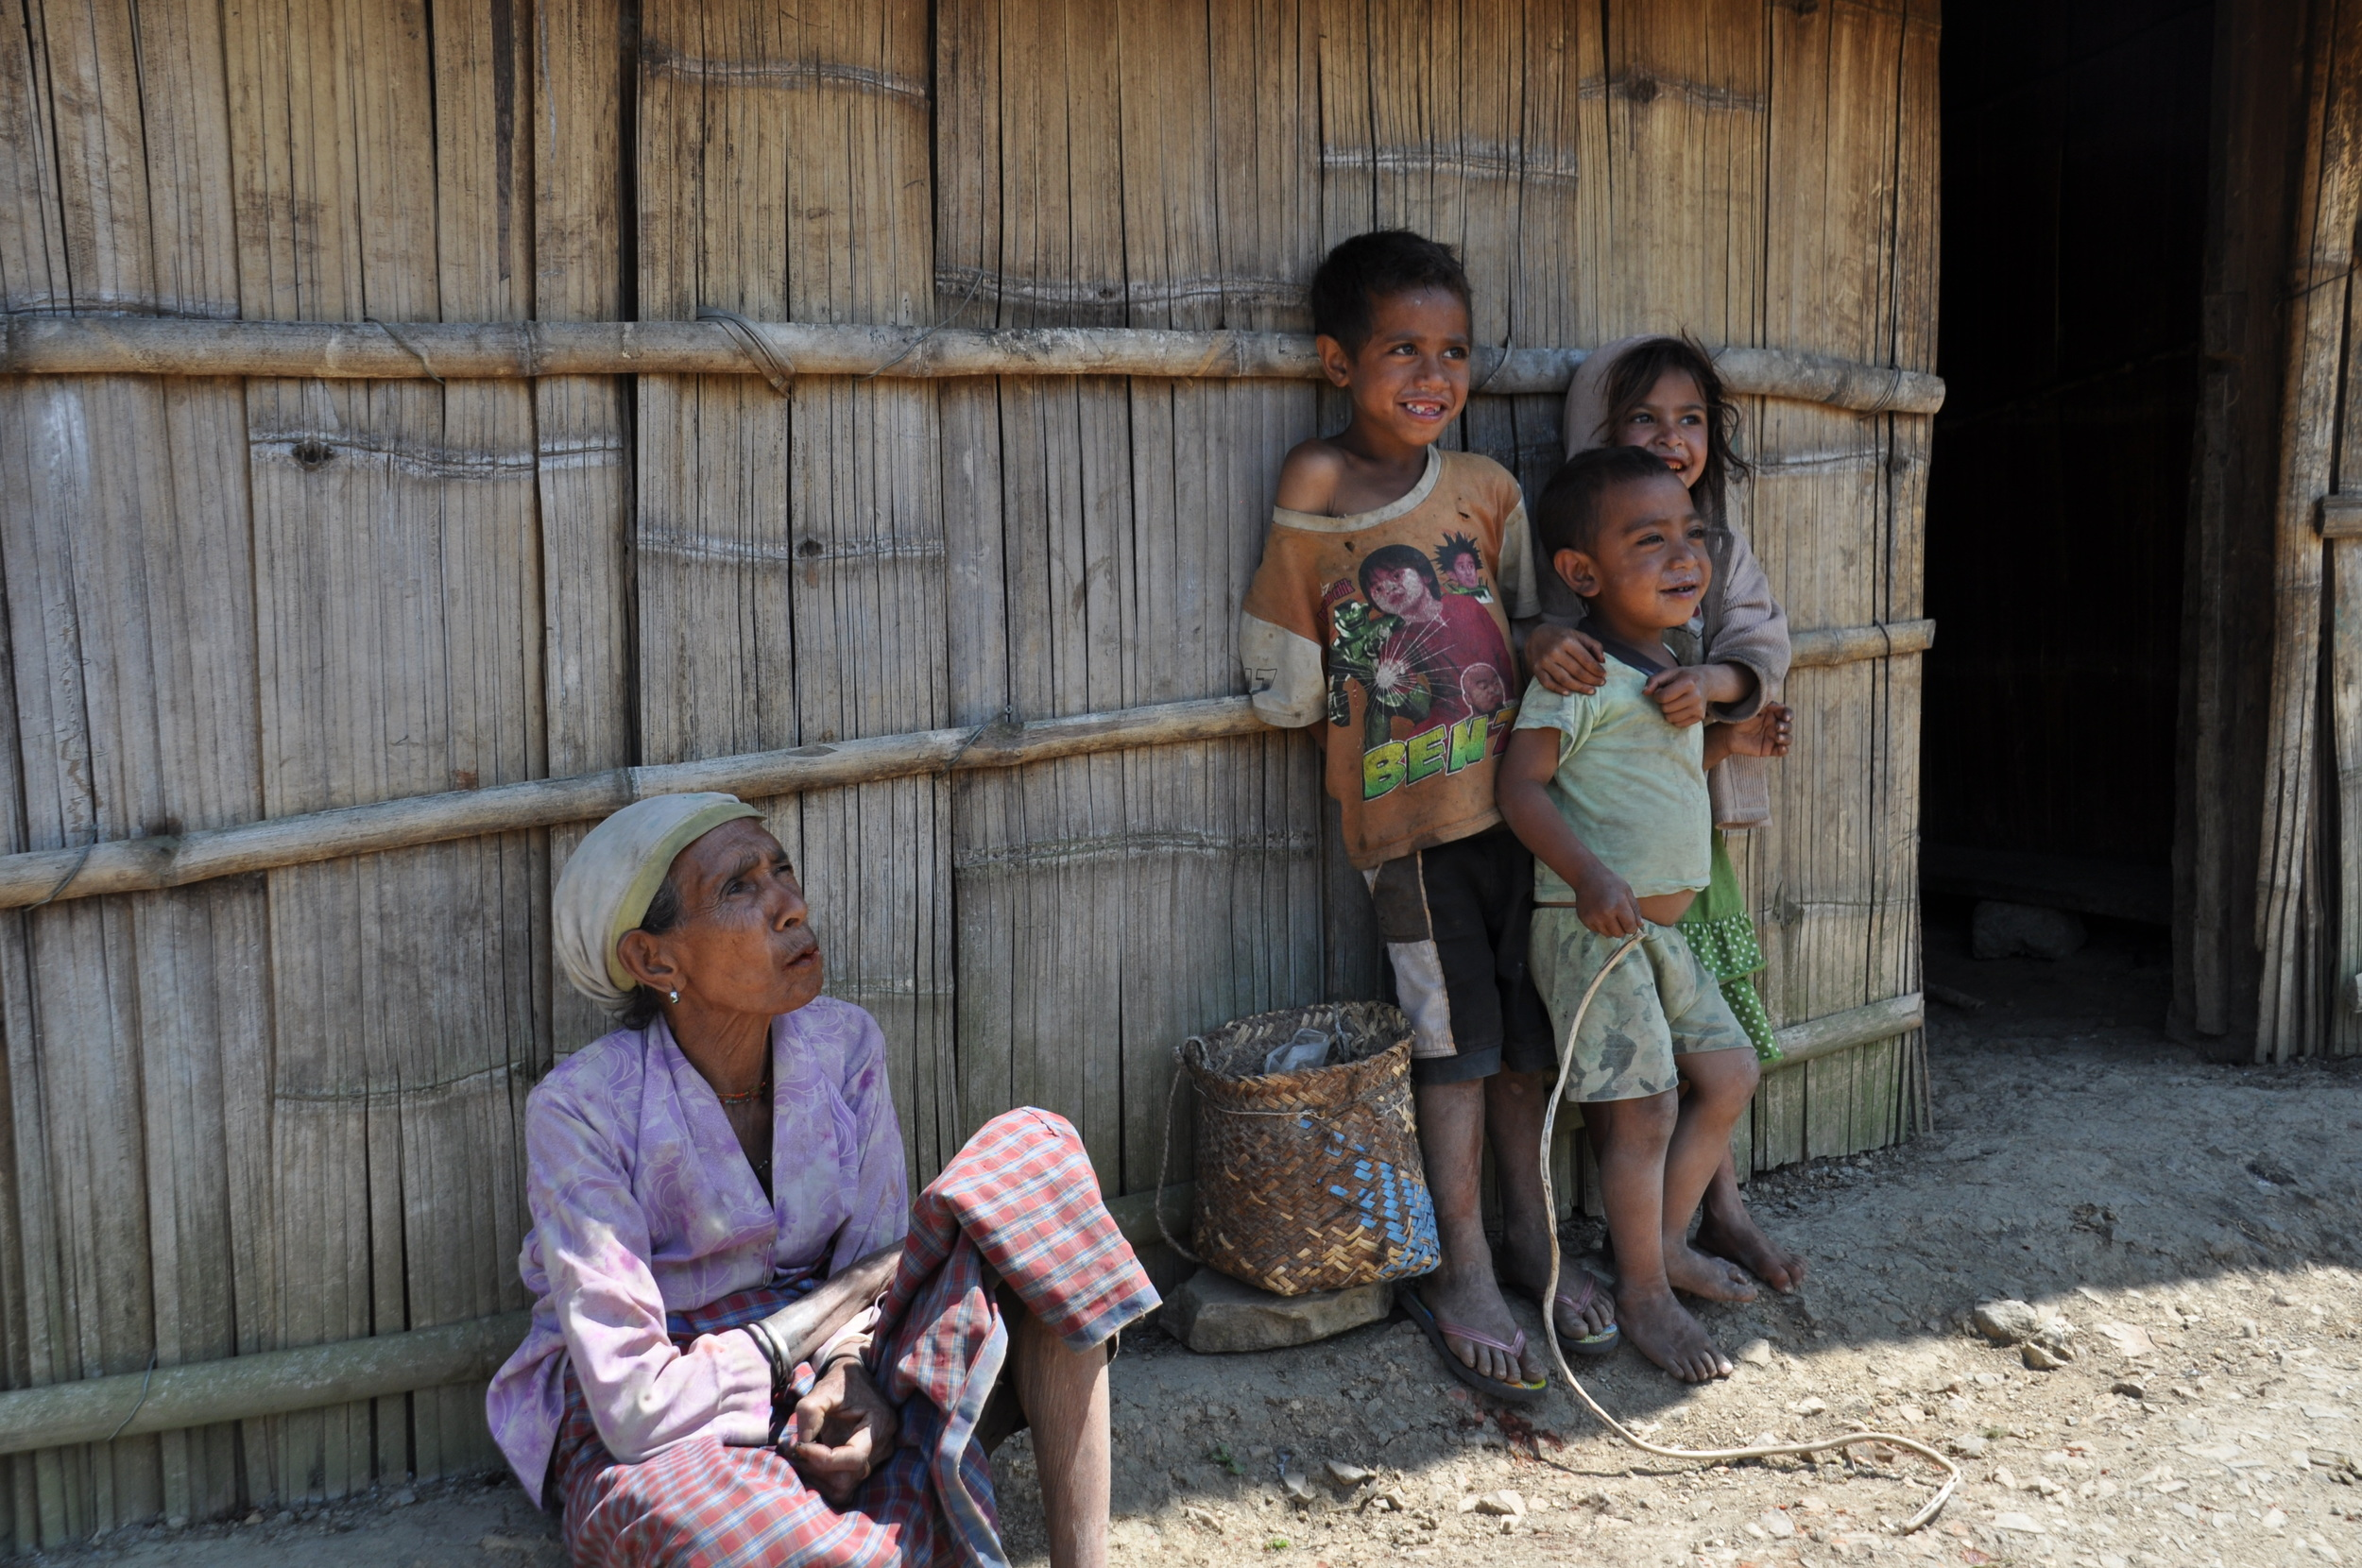 Children in the remote areas of Timor-Leste mostly come from poor farming communities with little access to education or health services